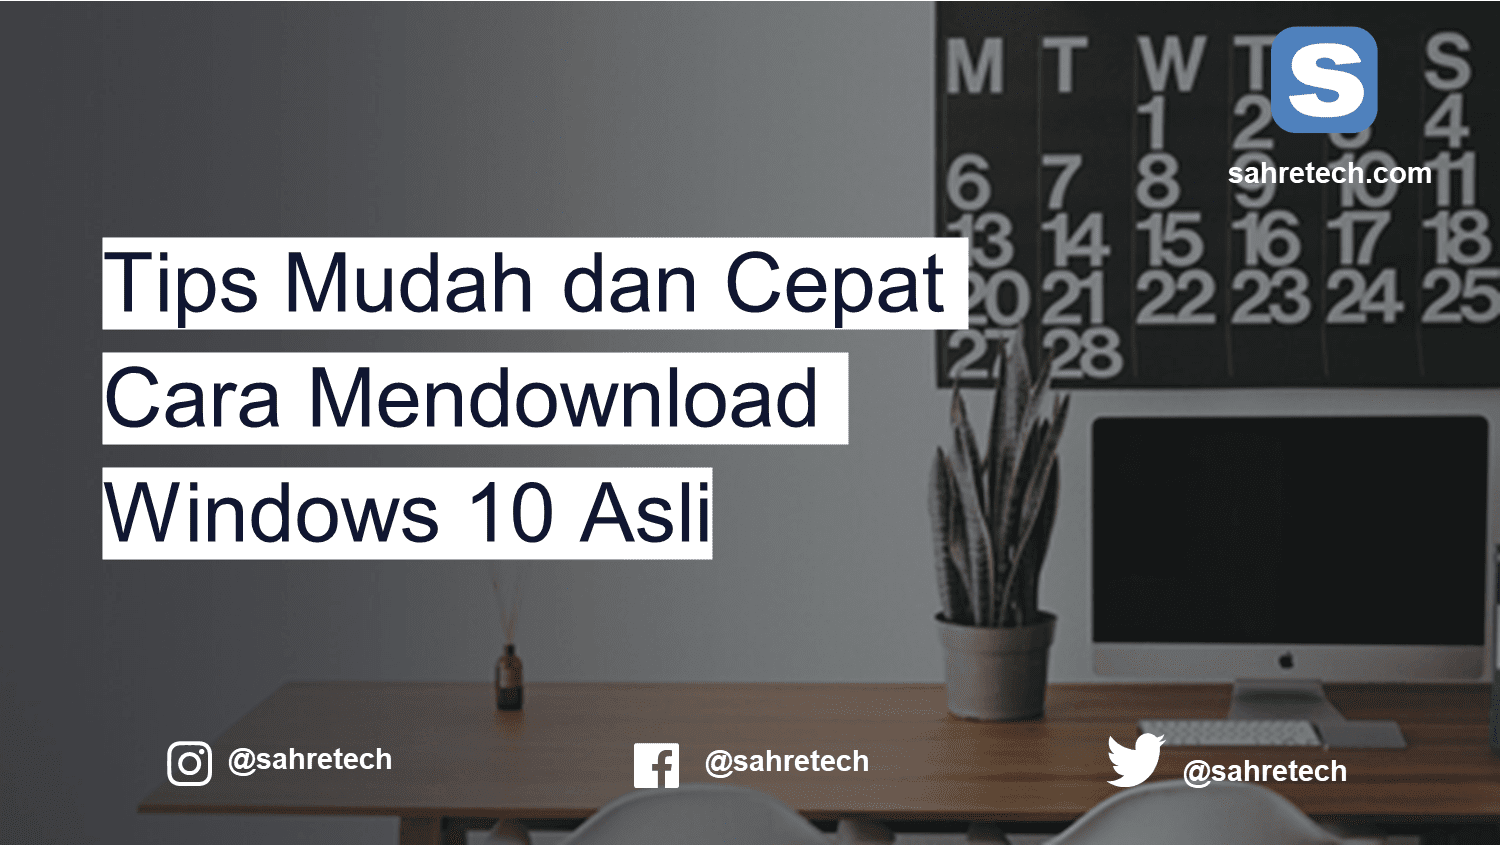 Tips Mudah dan Cepat Cara Mendownload Windows 10 Asli